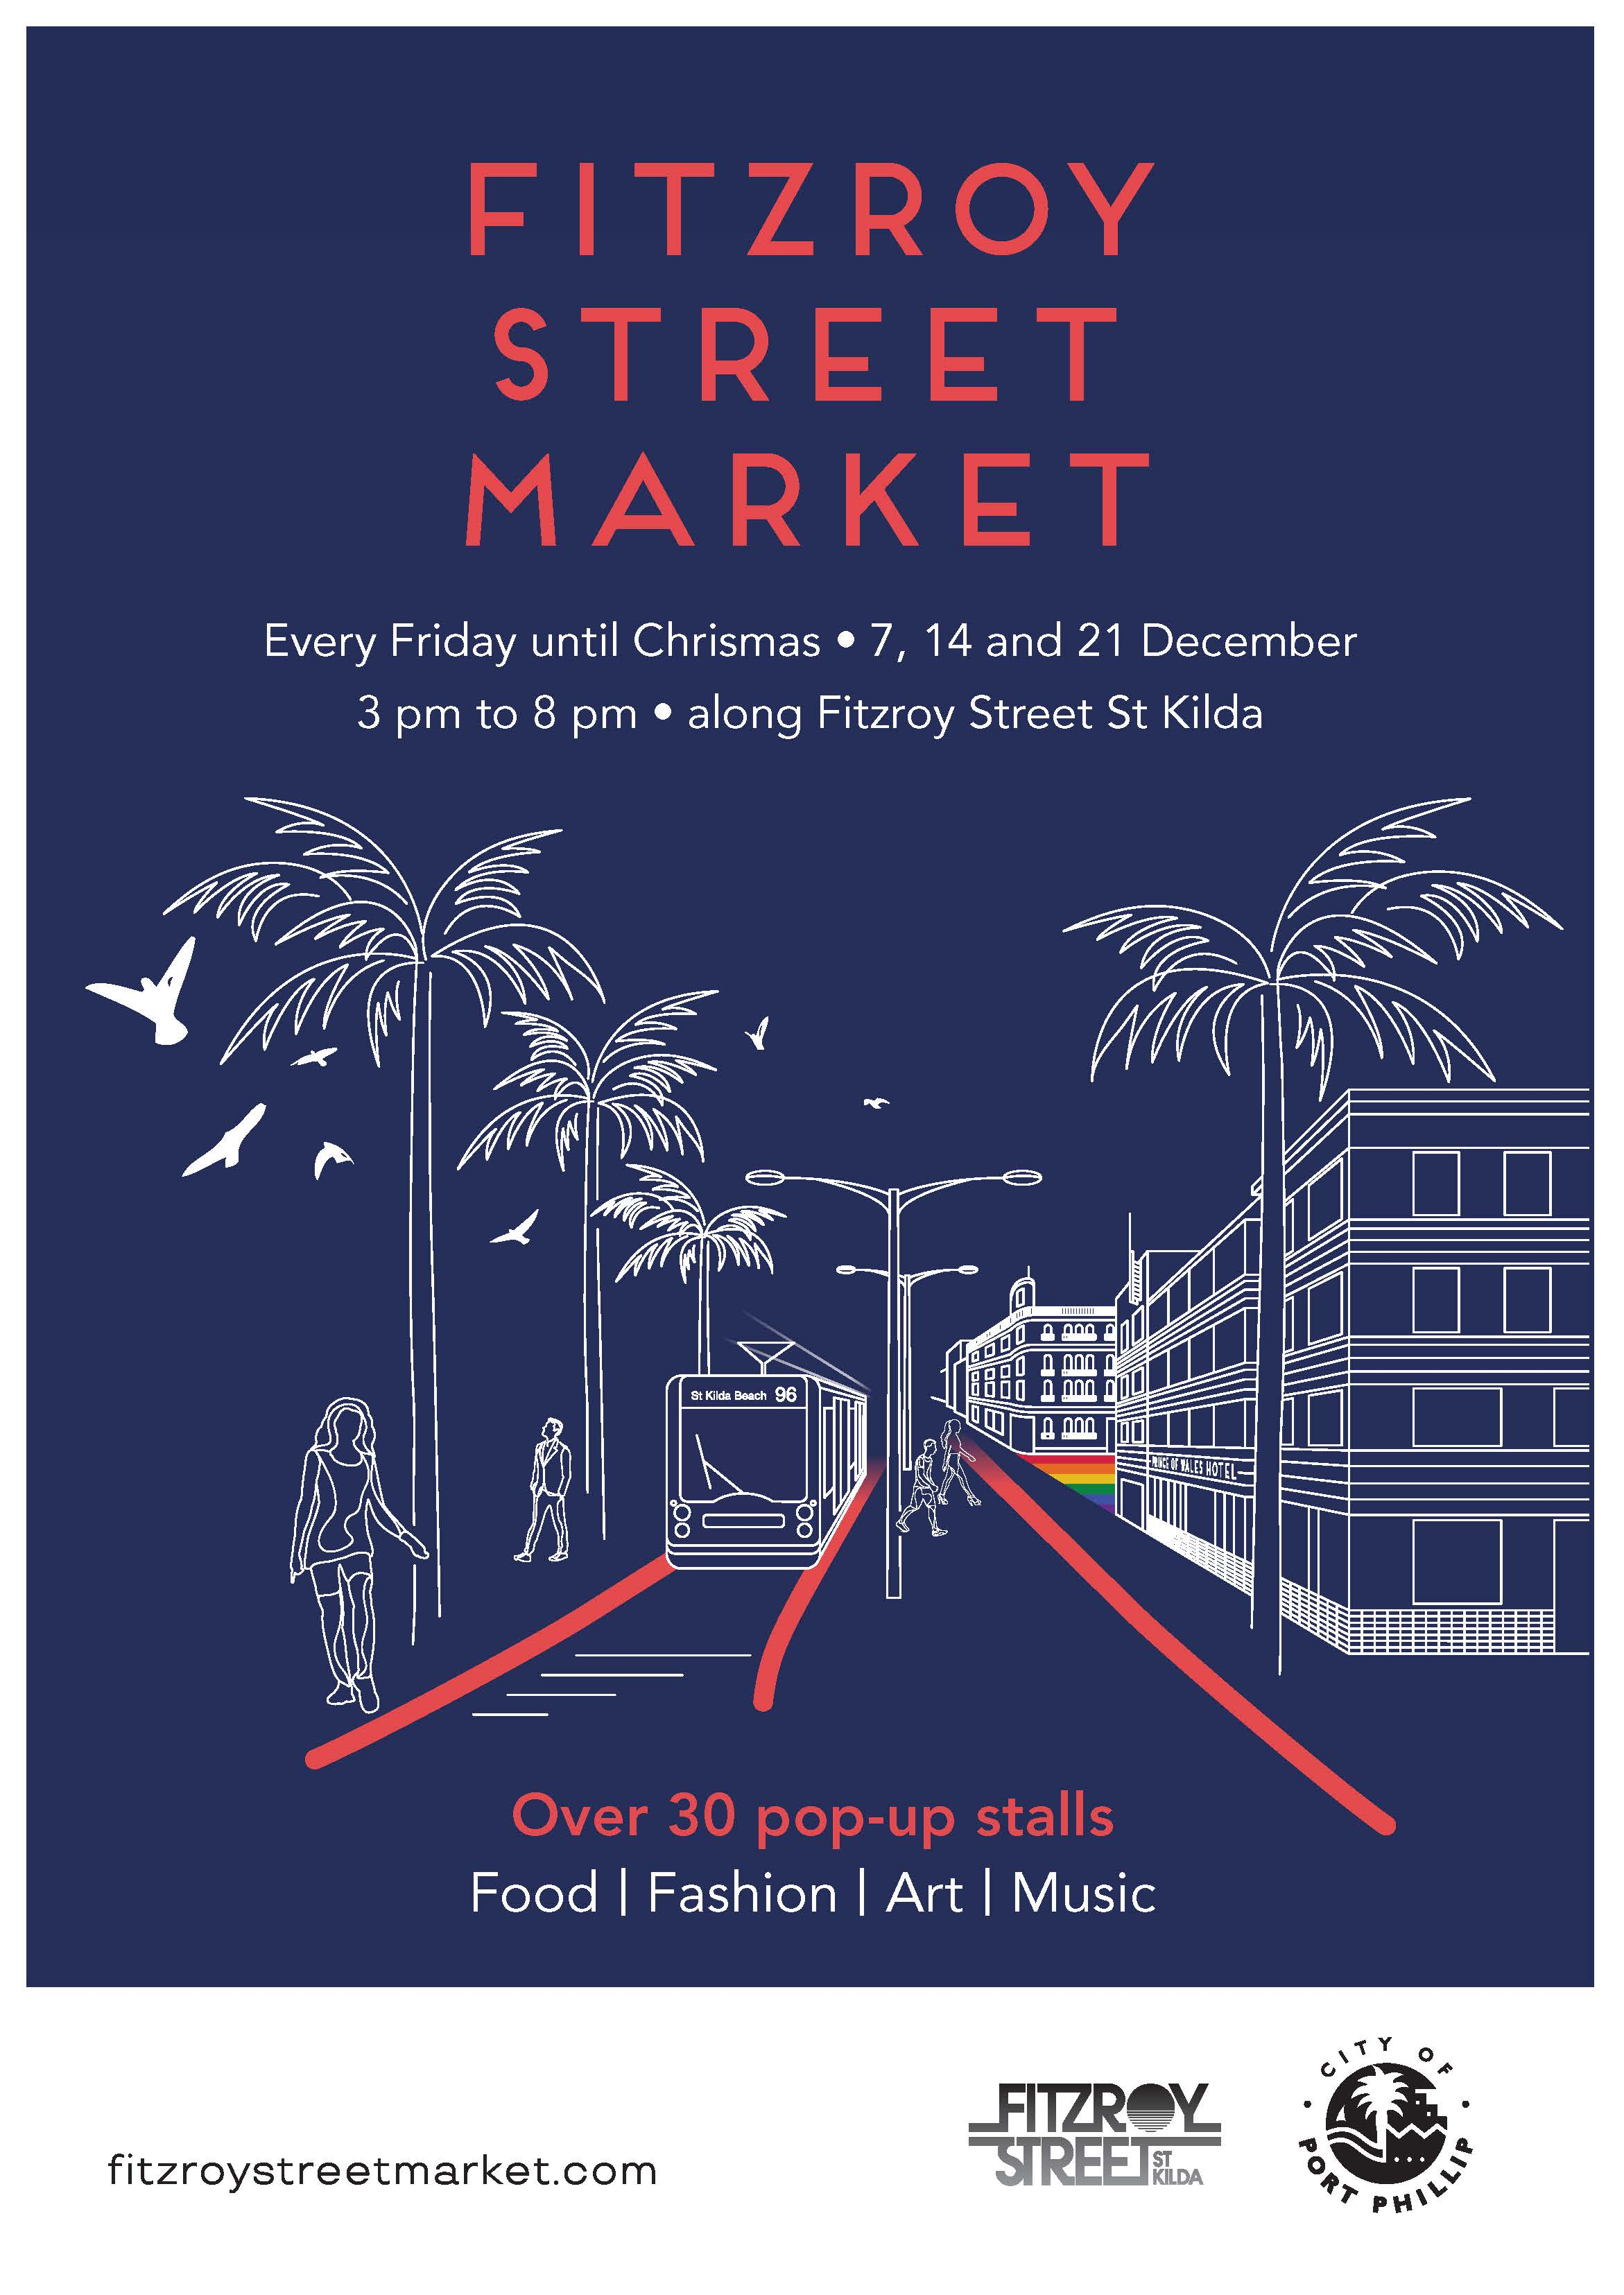 We will be part of the Fitzory Street Market in St Kilda on 7th & 14th December! This will be our last market of the year :) See you in 2019!